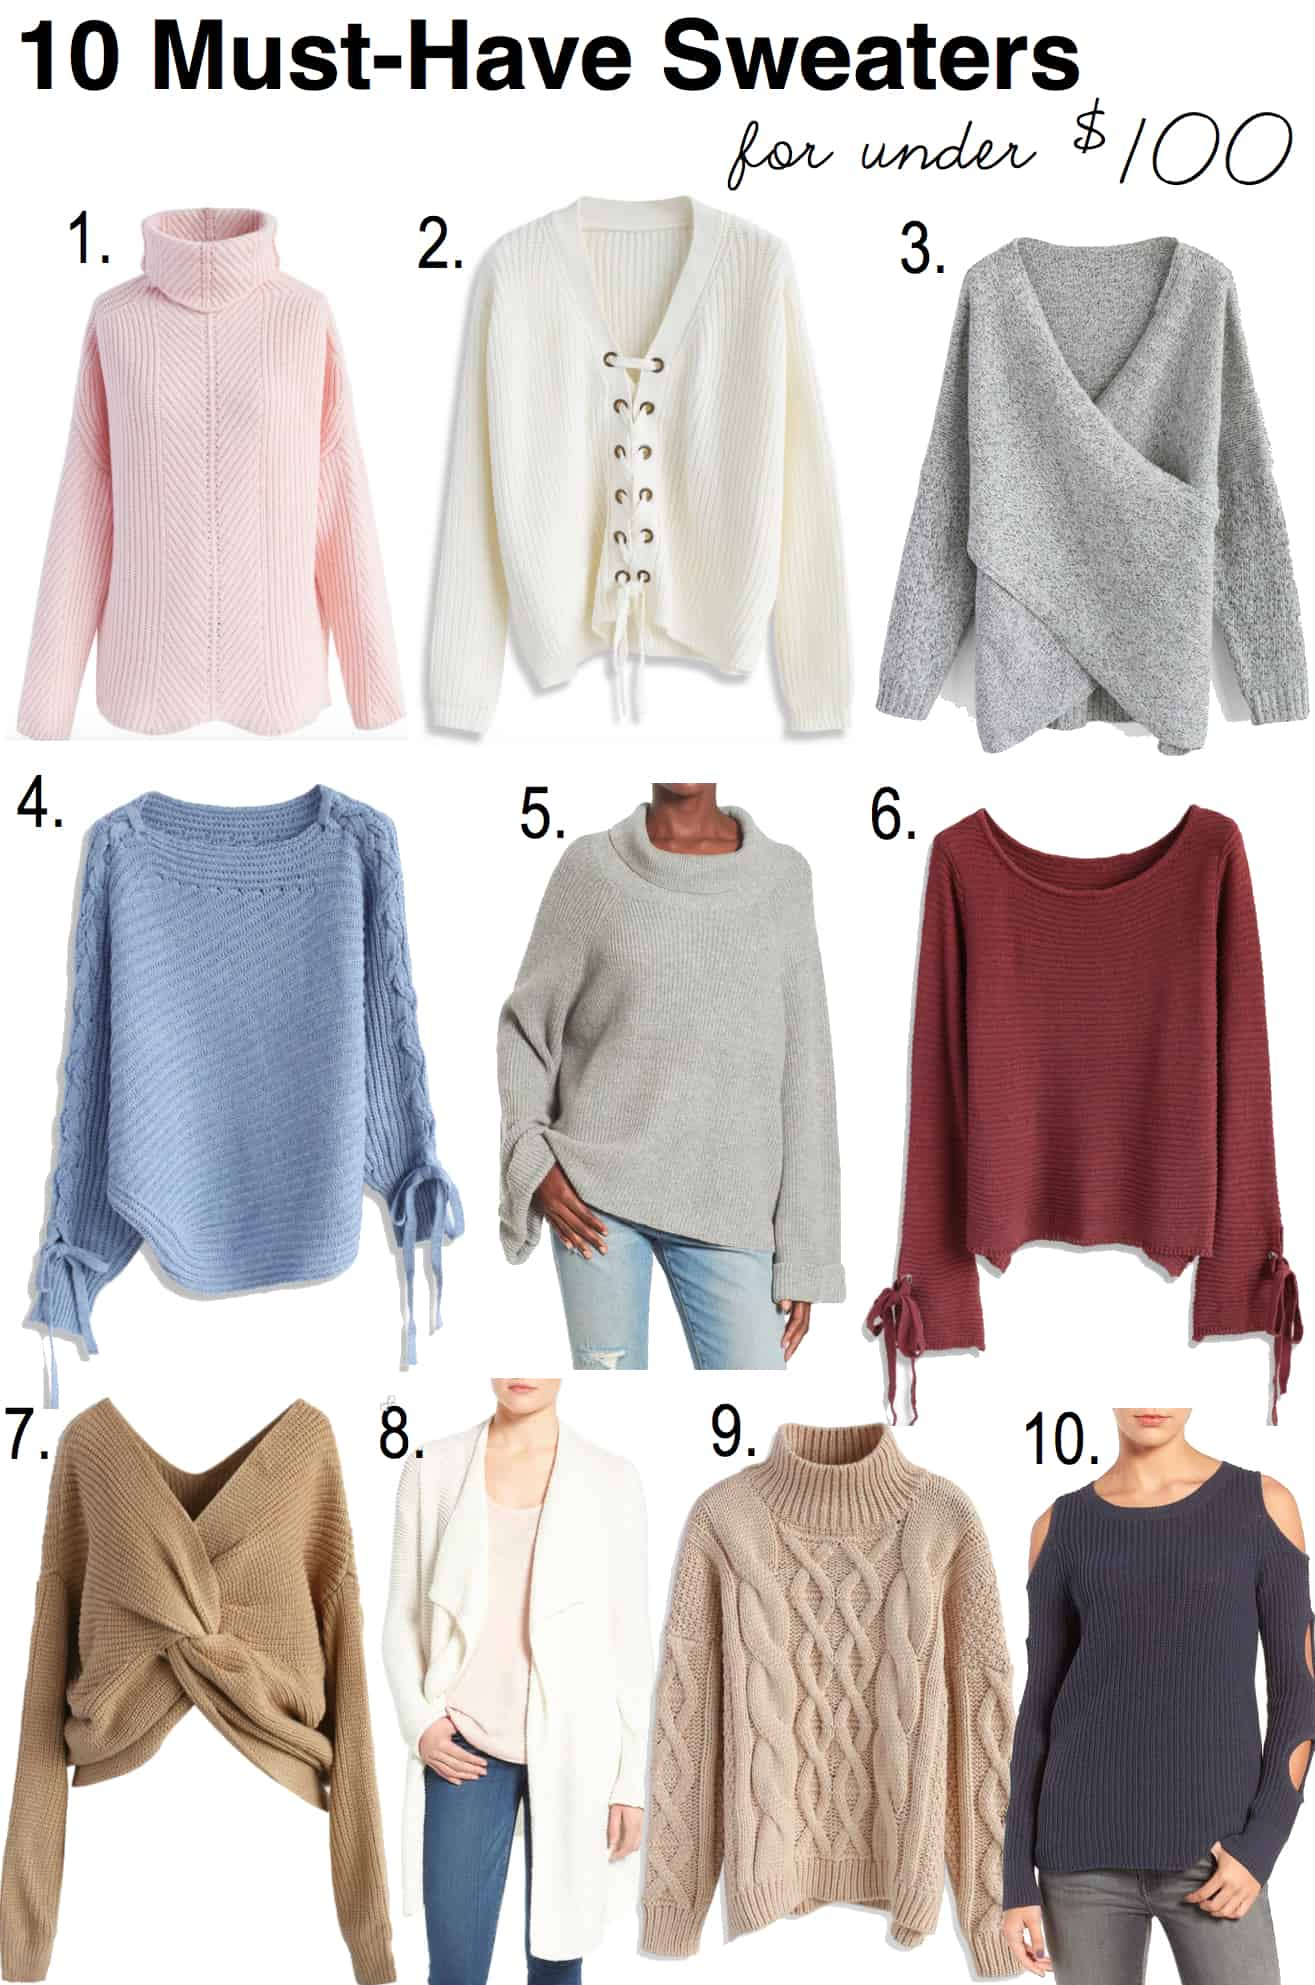 10 Must Have Sweaters Under $100